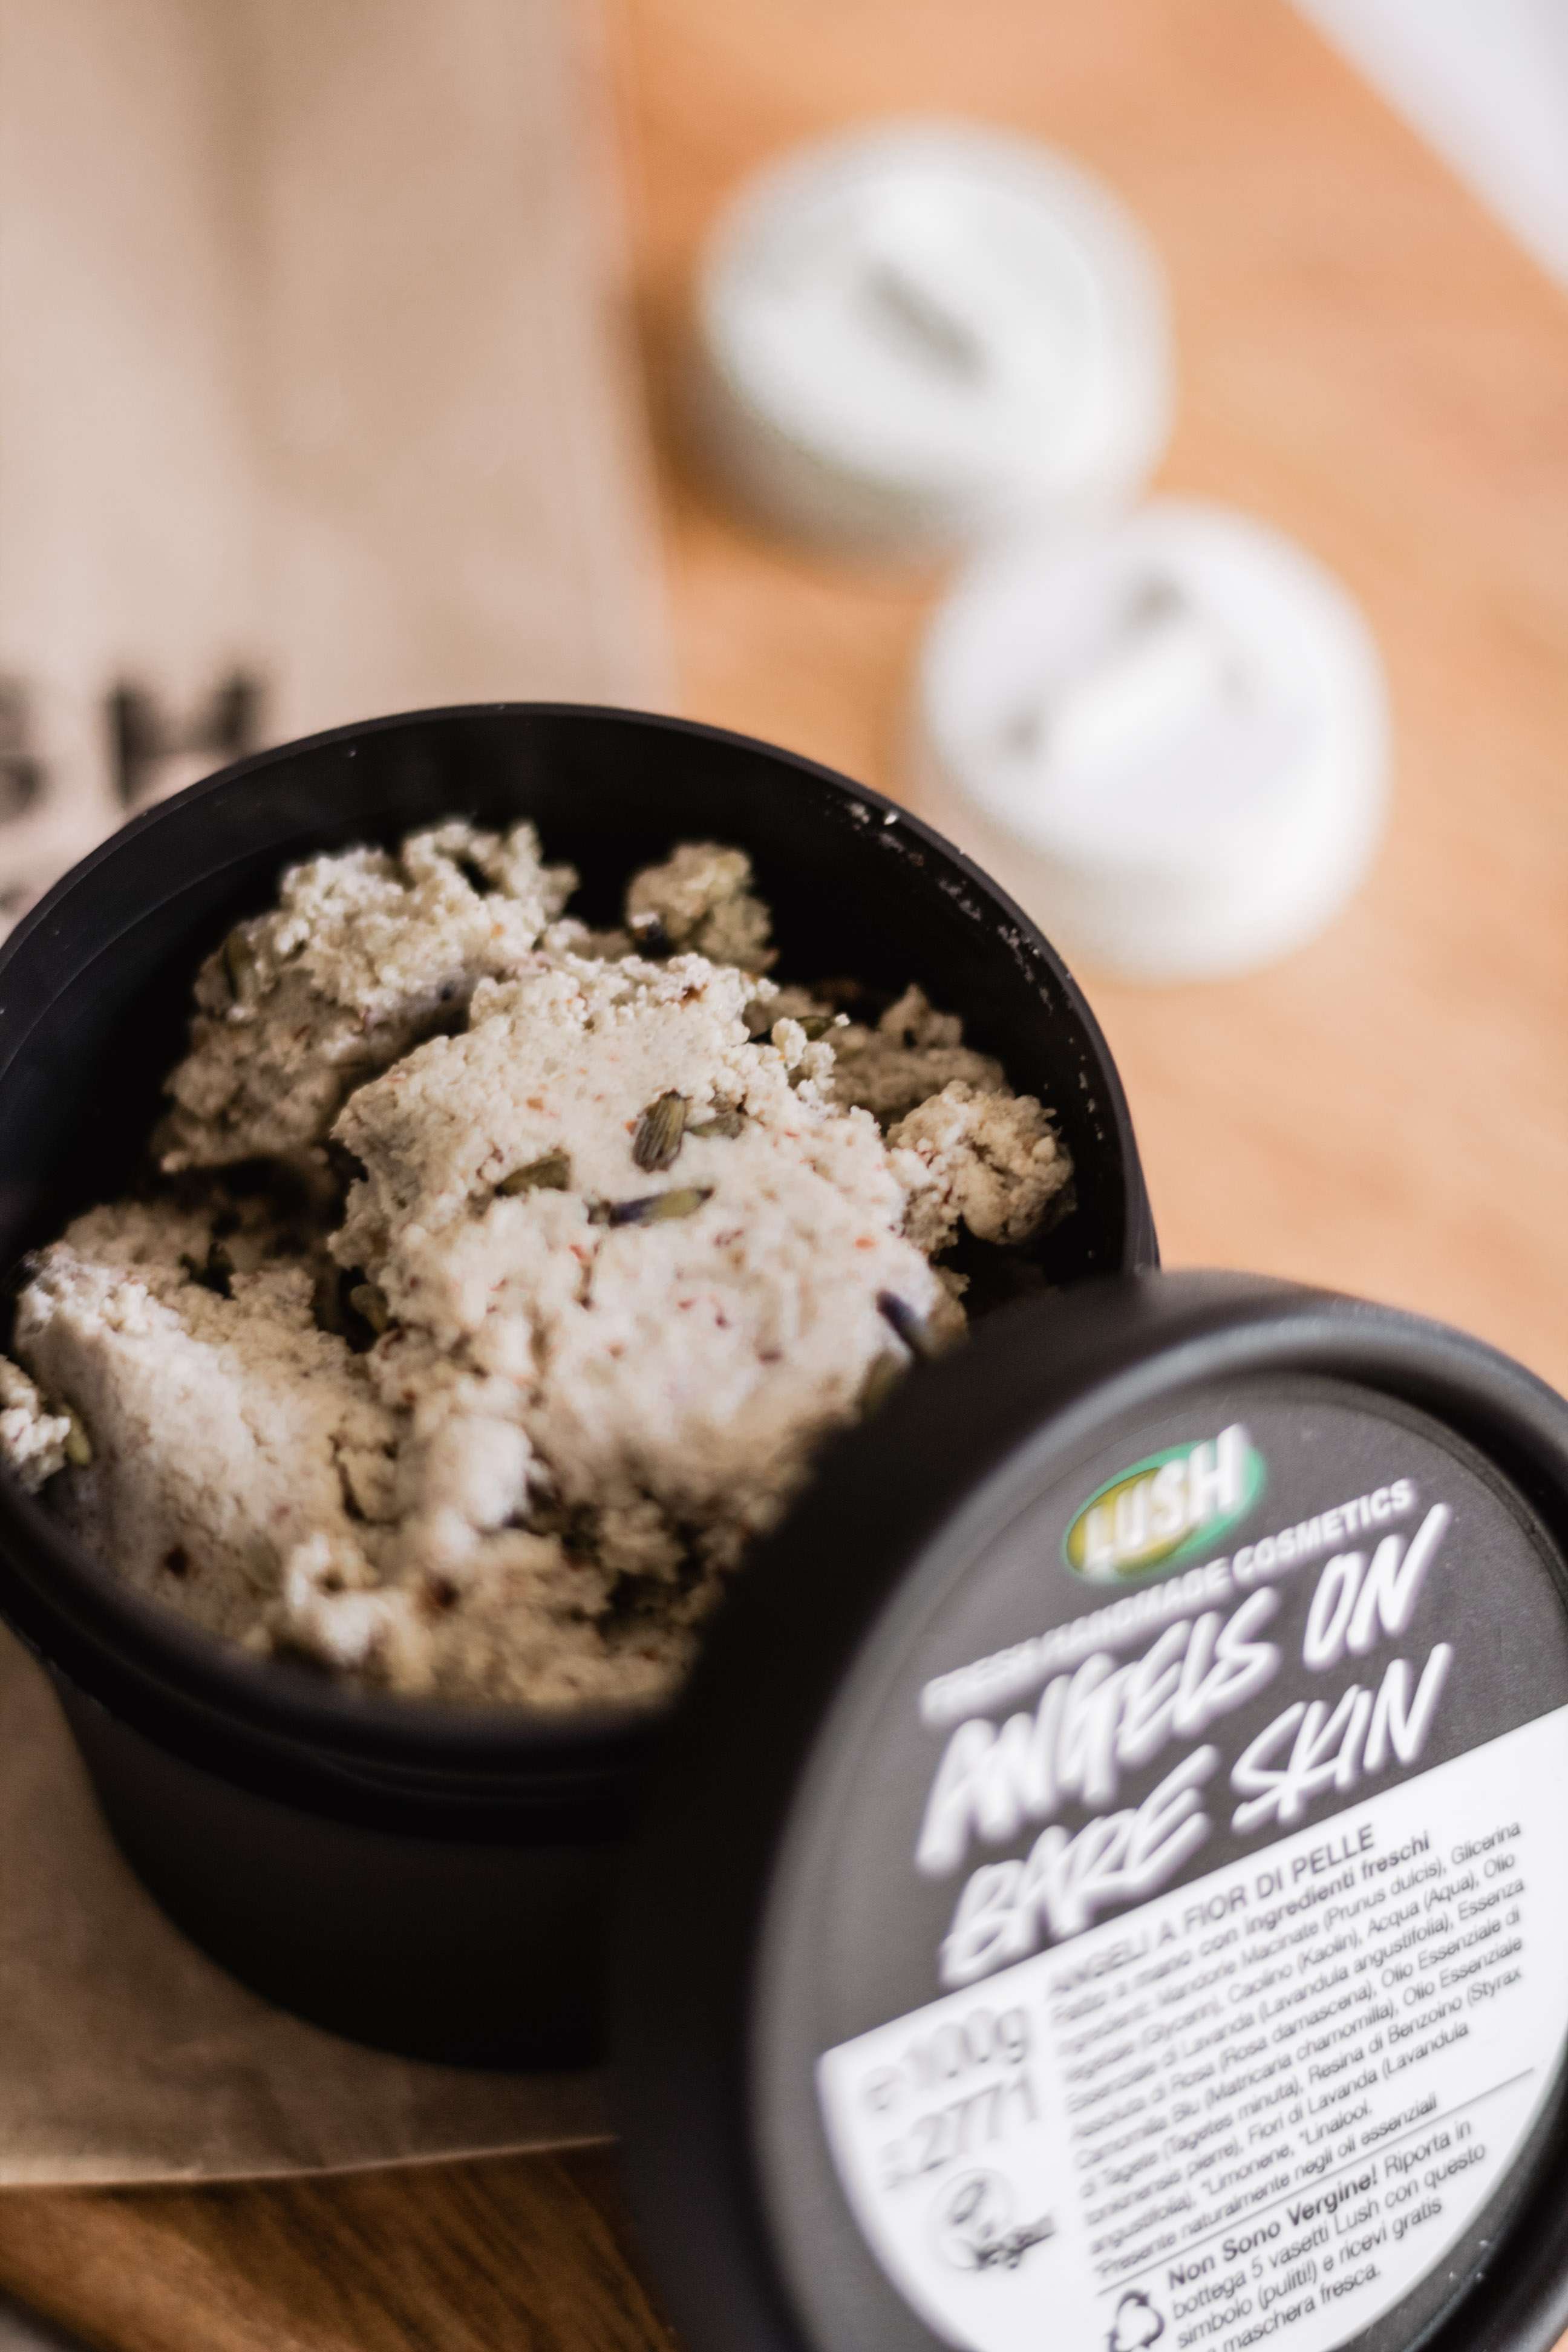 Lush Haul Angels on Bare Skin Cleanser